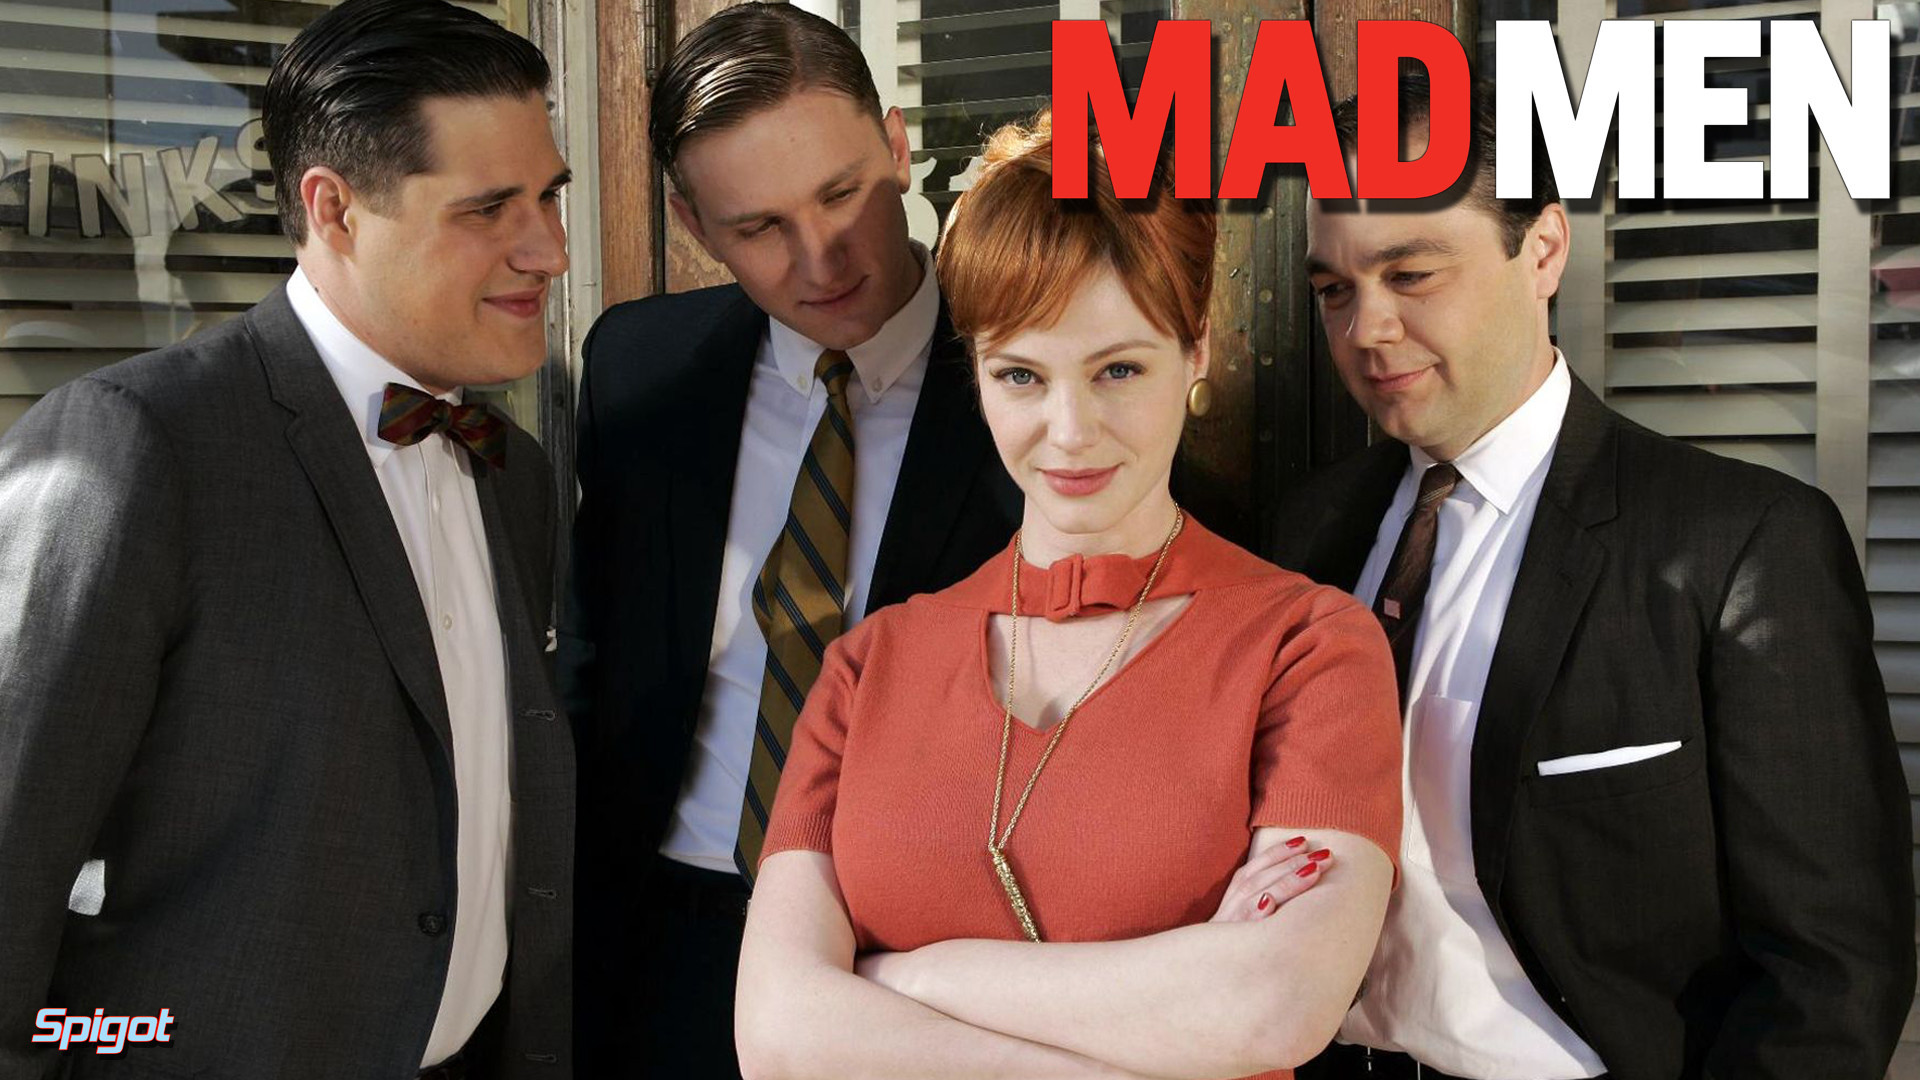 1920x1080  MAD MEN Wallpapers. Here .